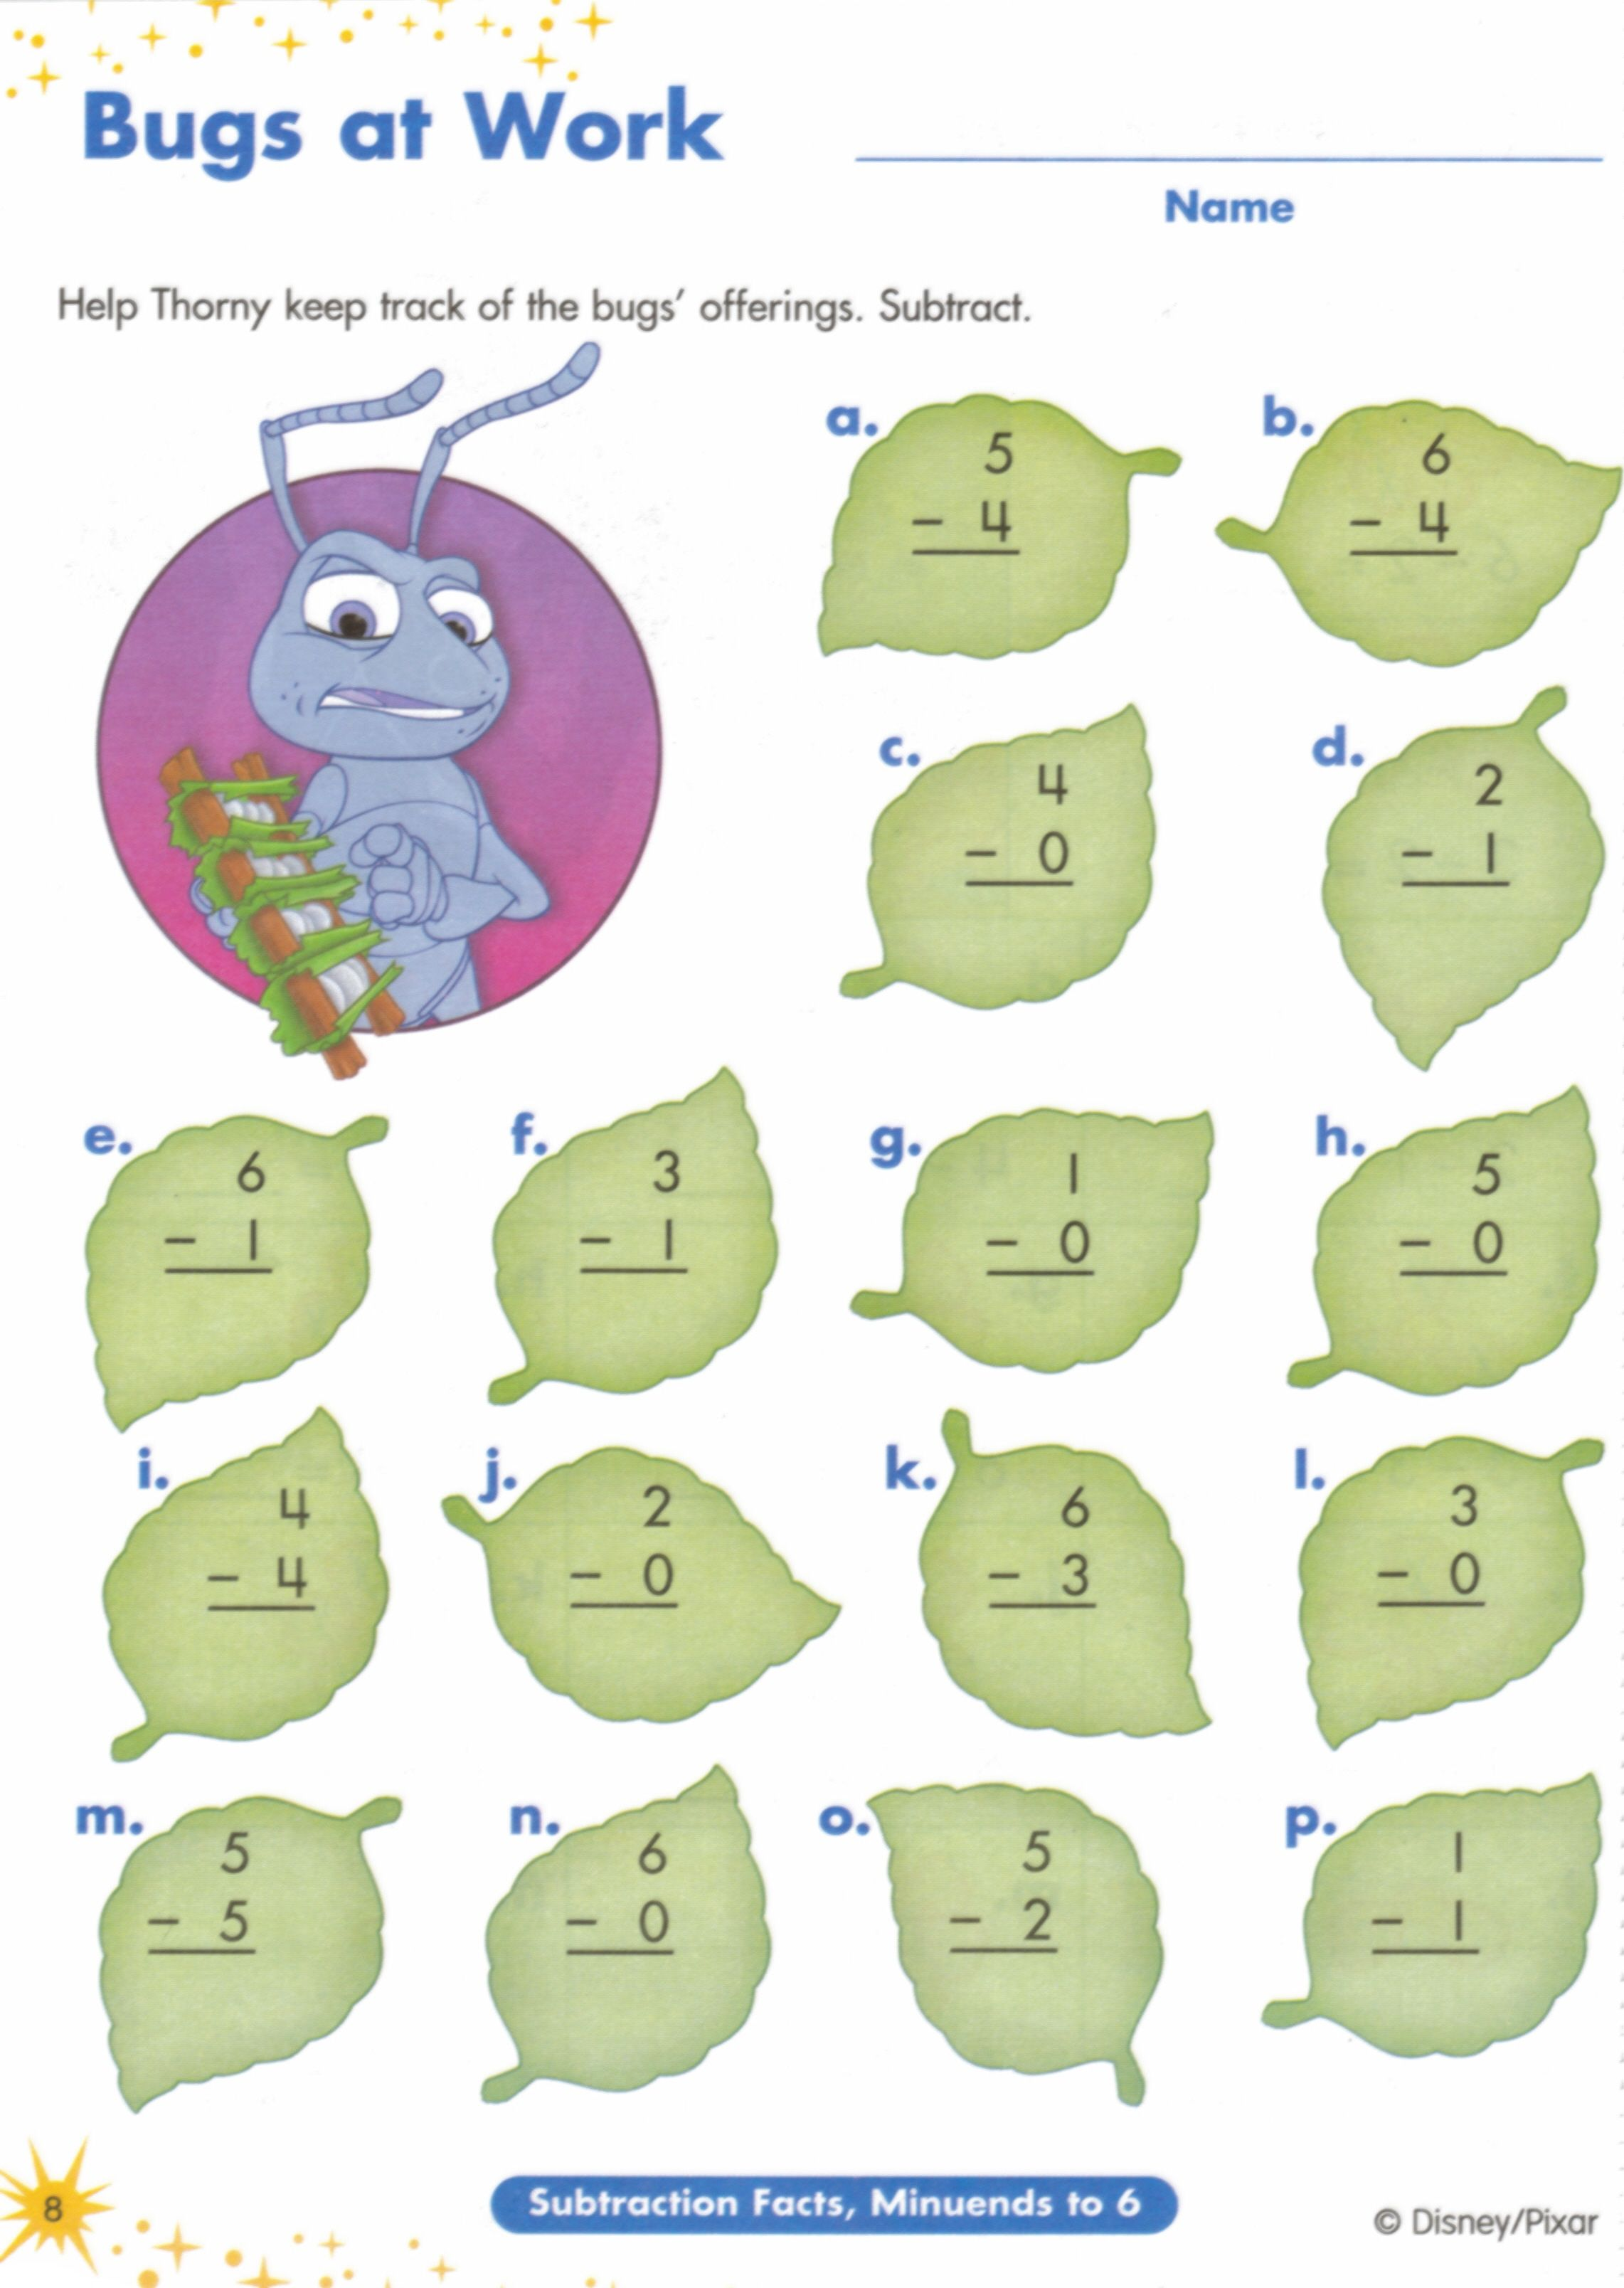 Proatmealus  Pleasing  Images About Worksheets On Pinterest  Fun Facts For Kids  With Exquisite  Images About Worksheets On Pinterest  Fun Facts For Kids Earth Day Worksheets And Jungles With Archaic Multiplying Fractions And Whole Numbers Worksheet Also Super Teacher Worksheets Answer Key In Addition Problem Solving Worksheets For Adults And Atomic Theory Worksheet As Well As Science Worksheets For Rd Grade Additionally Th Grade English Worksheets From Pinterestcom With Proatmealus  Exquisite  Images About Worksheets On Pinterest  Fun Facts For Kids  With Archaic  Images About Worksheets On Pinterest  Fun Facts For Kids Earth Day Worksheets And Jungles And Pleasing Multiplying Fractions And Whole Numbers Worksheet Also Super Teacher Worksheets Answer Key In Addition Problem Solving Worksheets For Adults From Pinterestcom